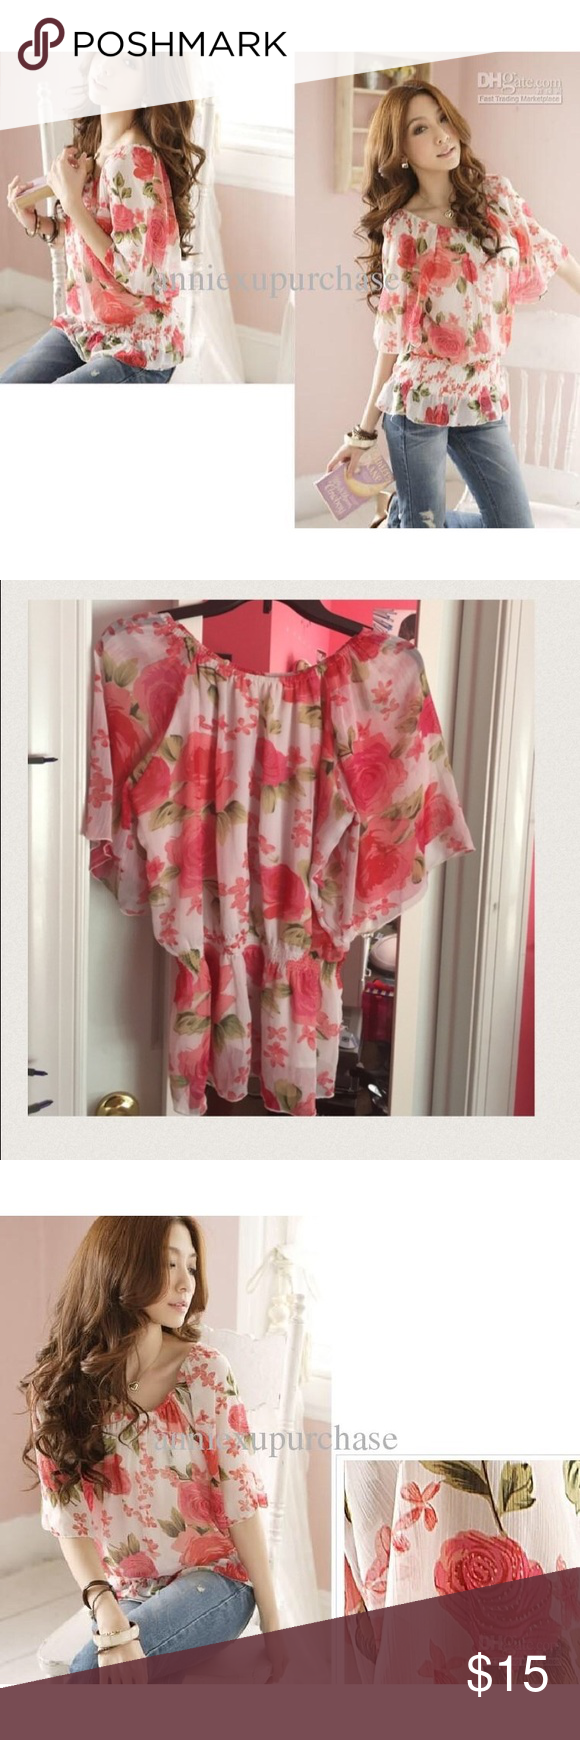 Allegra K blouse This blouse is beautiful for the summer. Pair it up with a cute skinny and flats, it would be perfect! Willing to negotiate price. Everything in my closet must go. Only been worn once. No stains or damages. Looks brand new. Allegra K  Tops Blouses